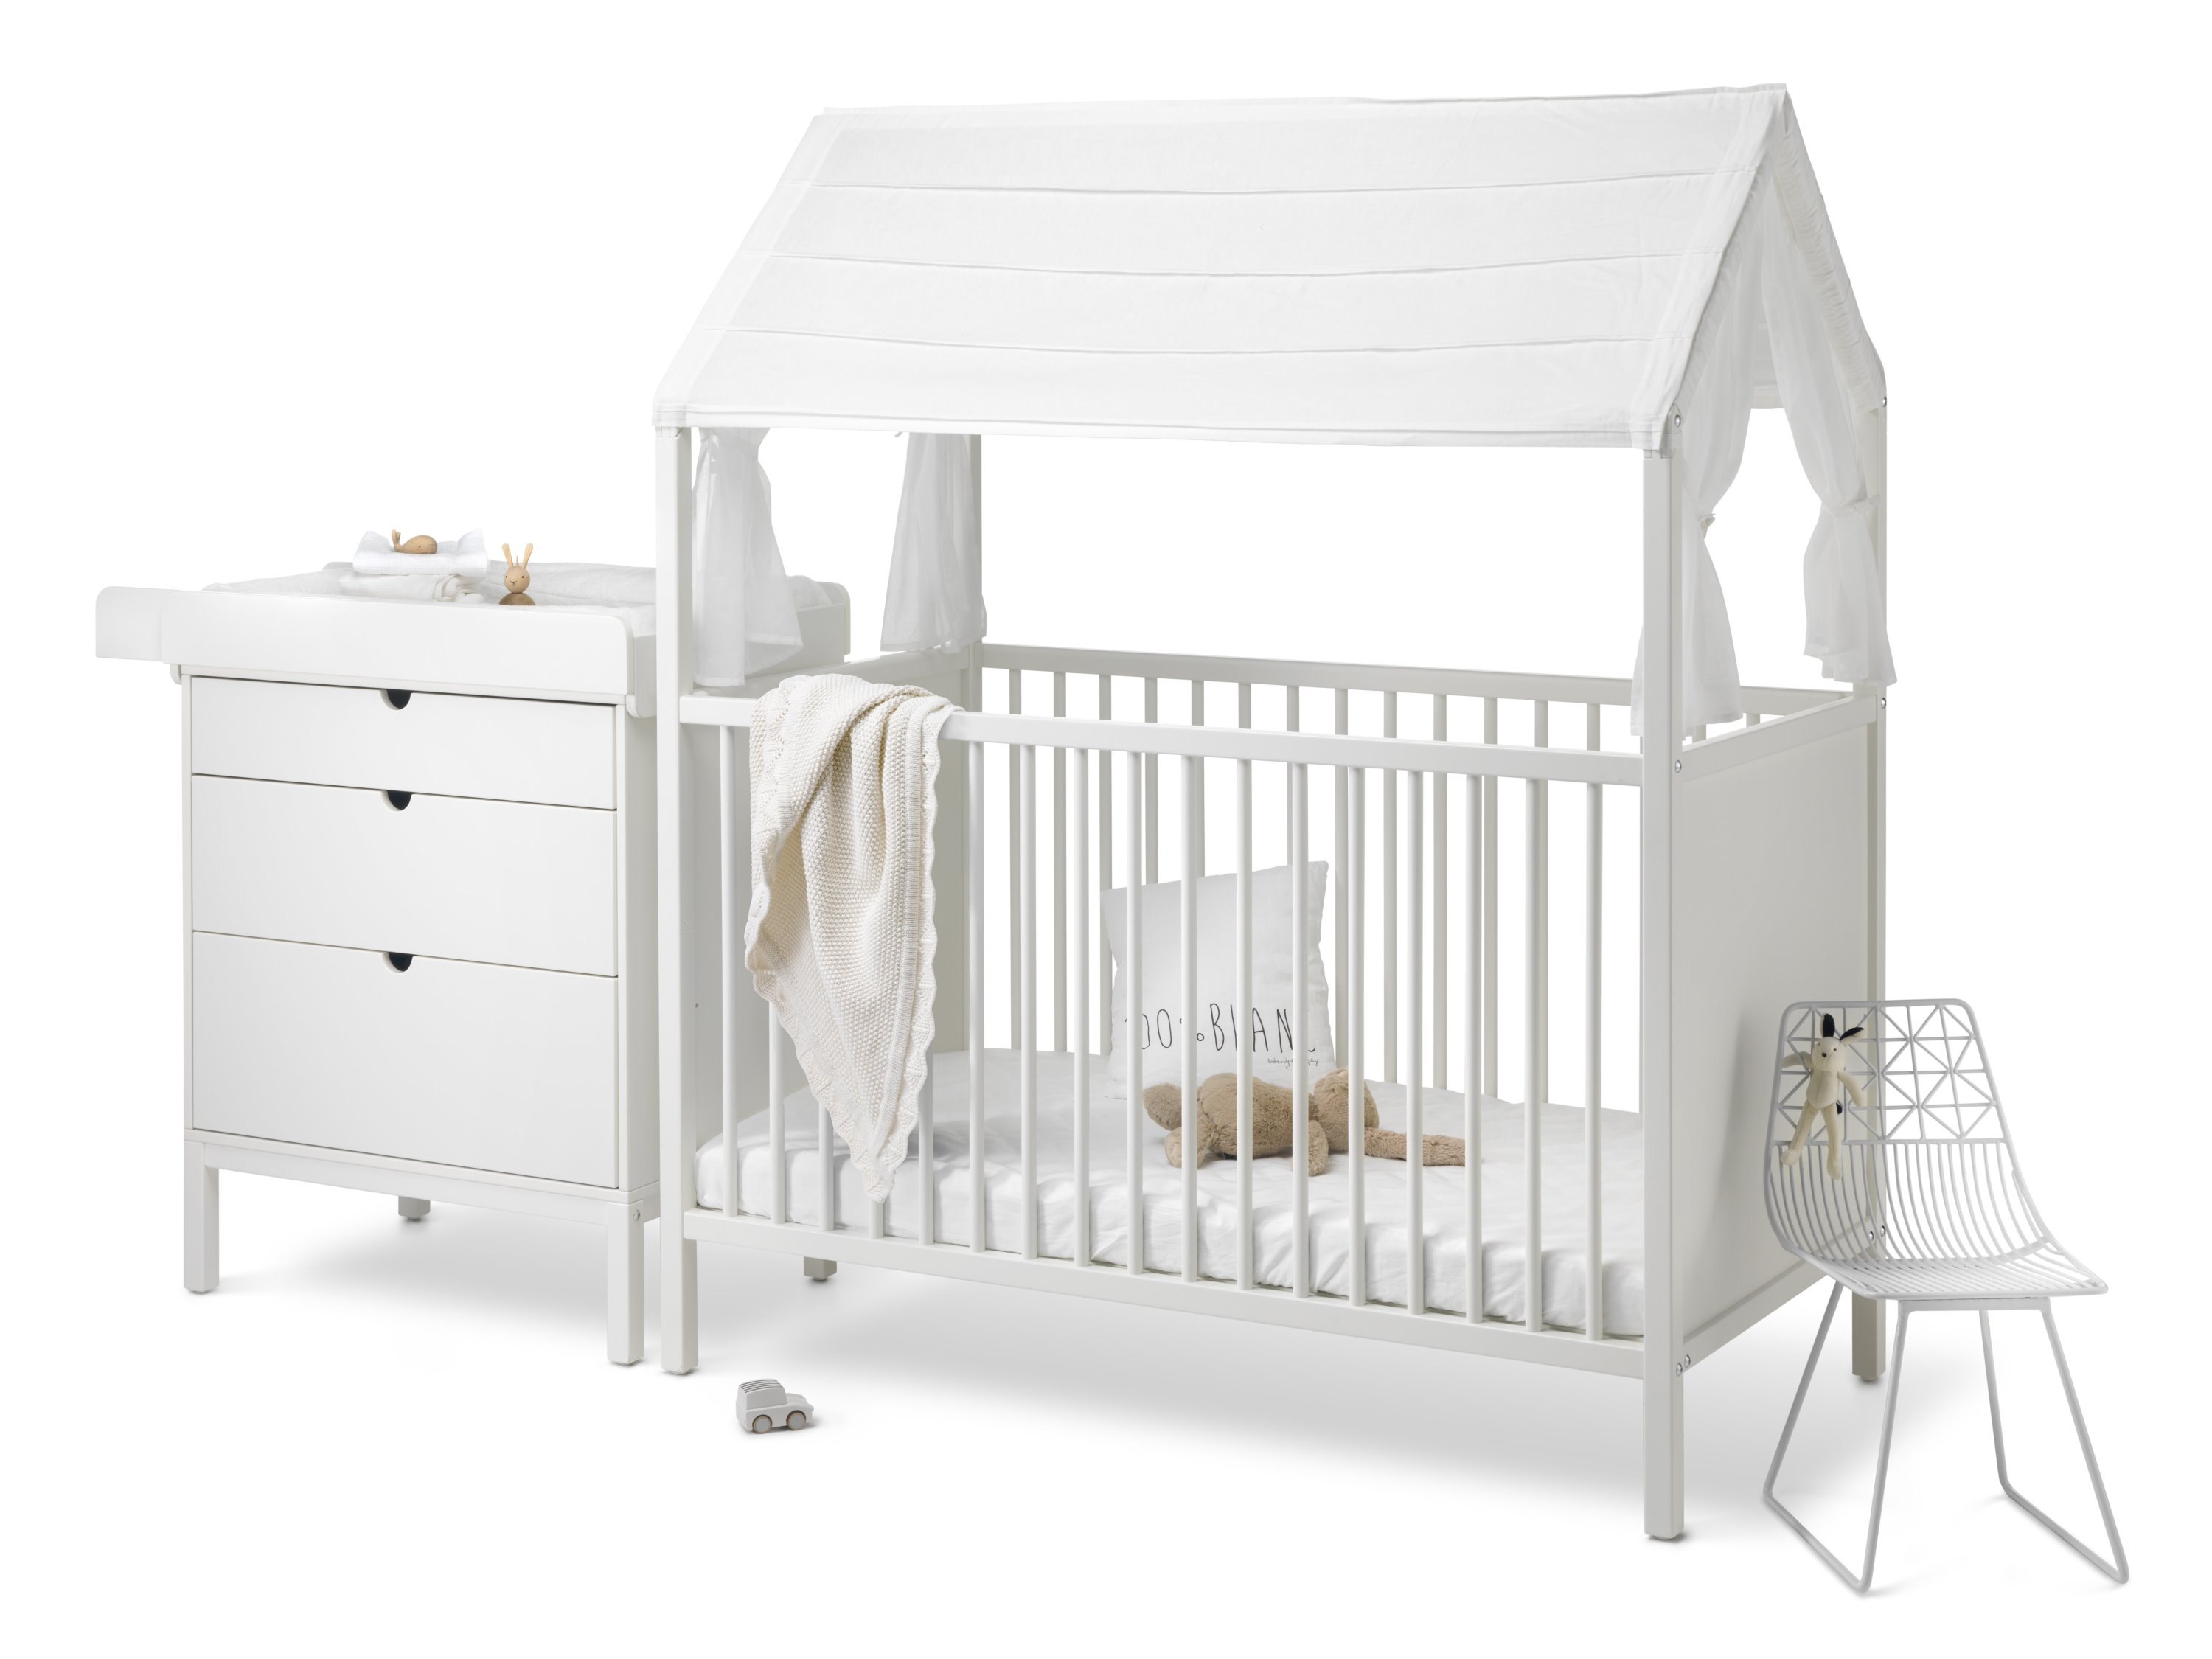 stokke home bett und wickeltisch wei pretababy pr t. Black Bedroom Furniture Sets. Home Design Ideas